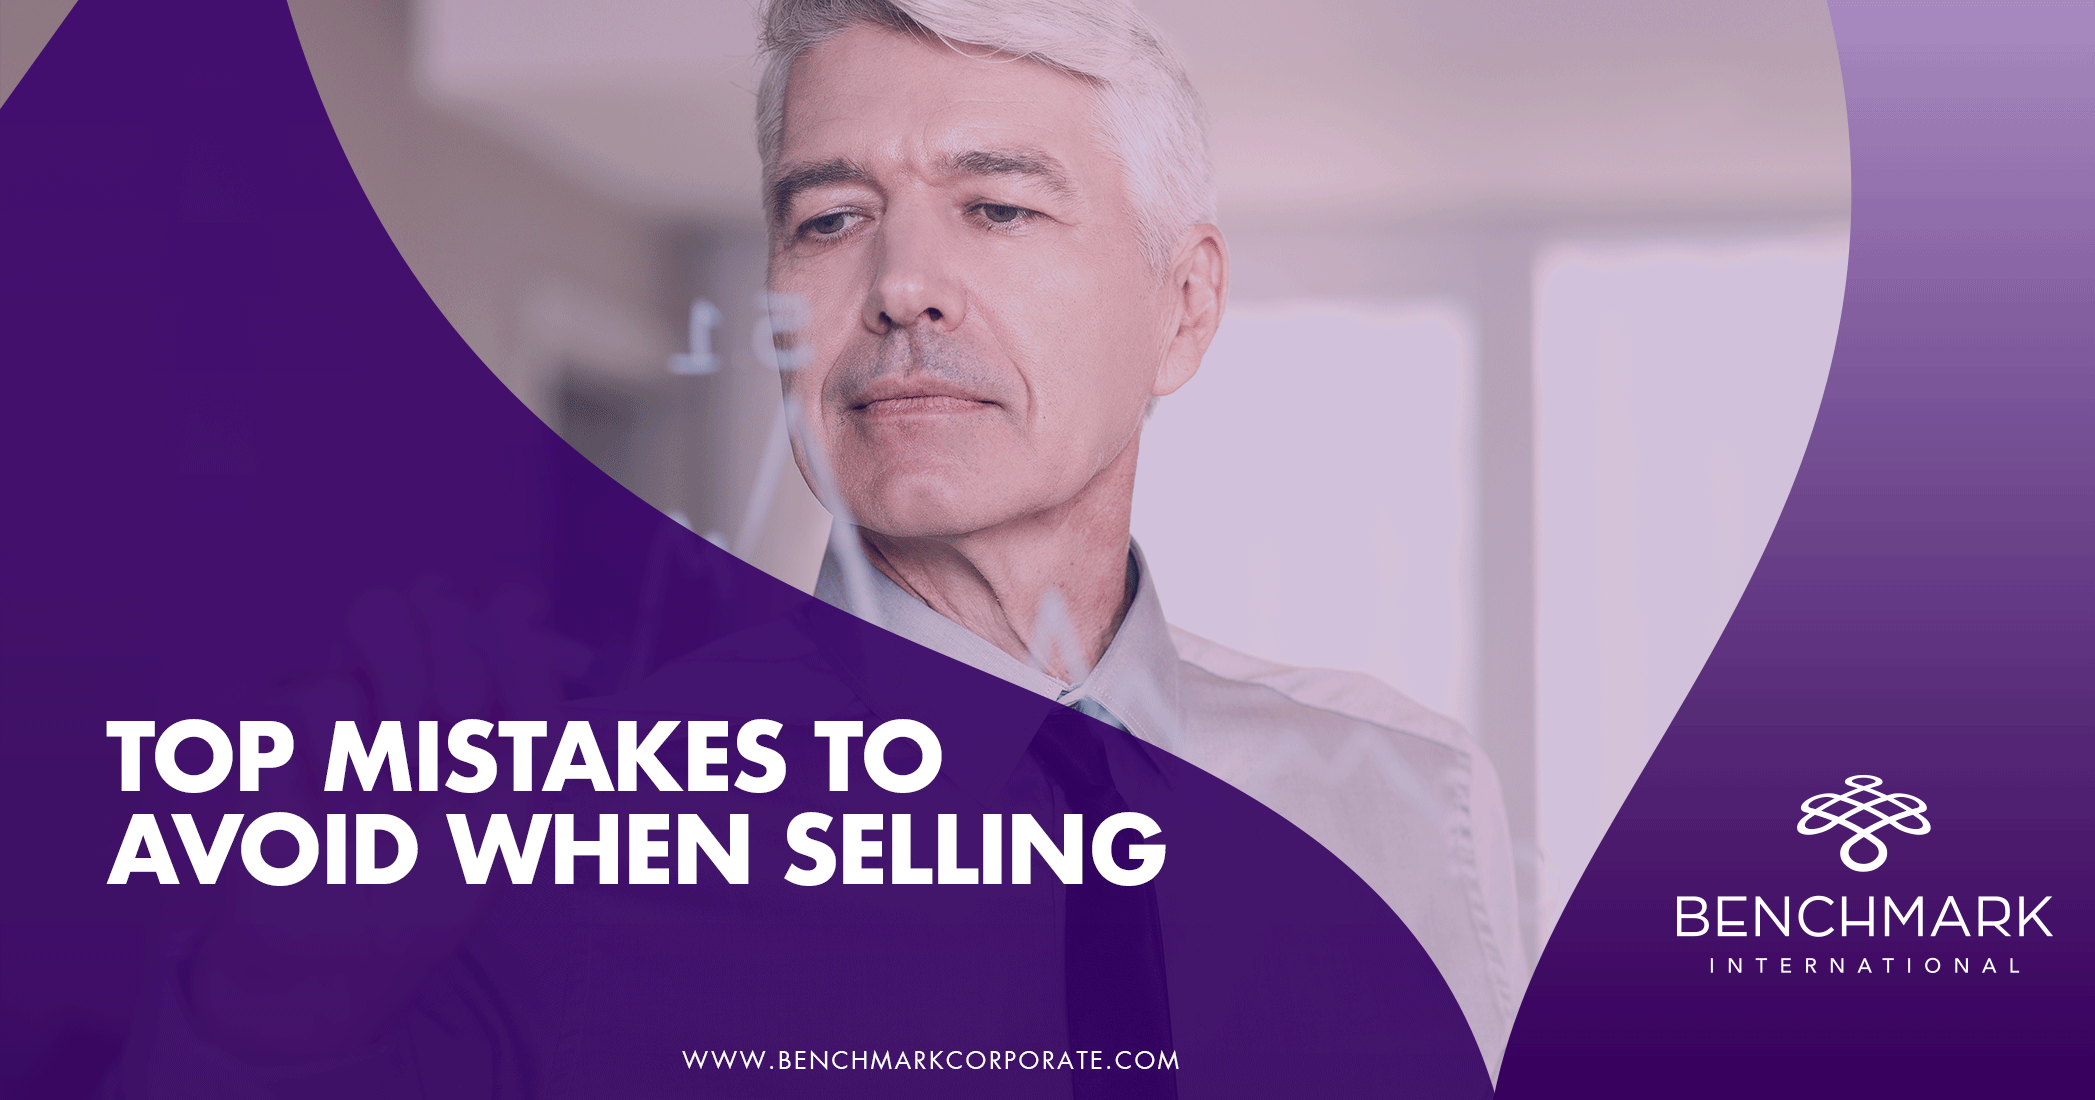 Top Mistakes to Avoid When Selling